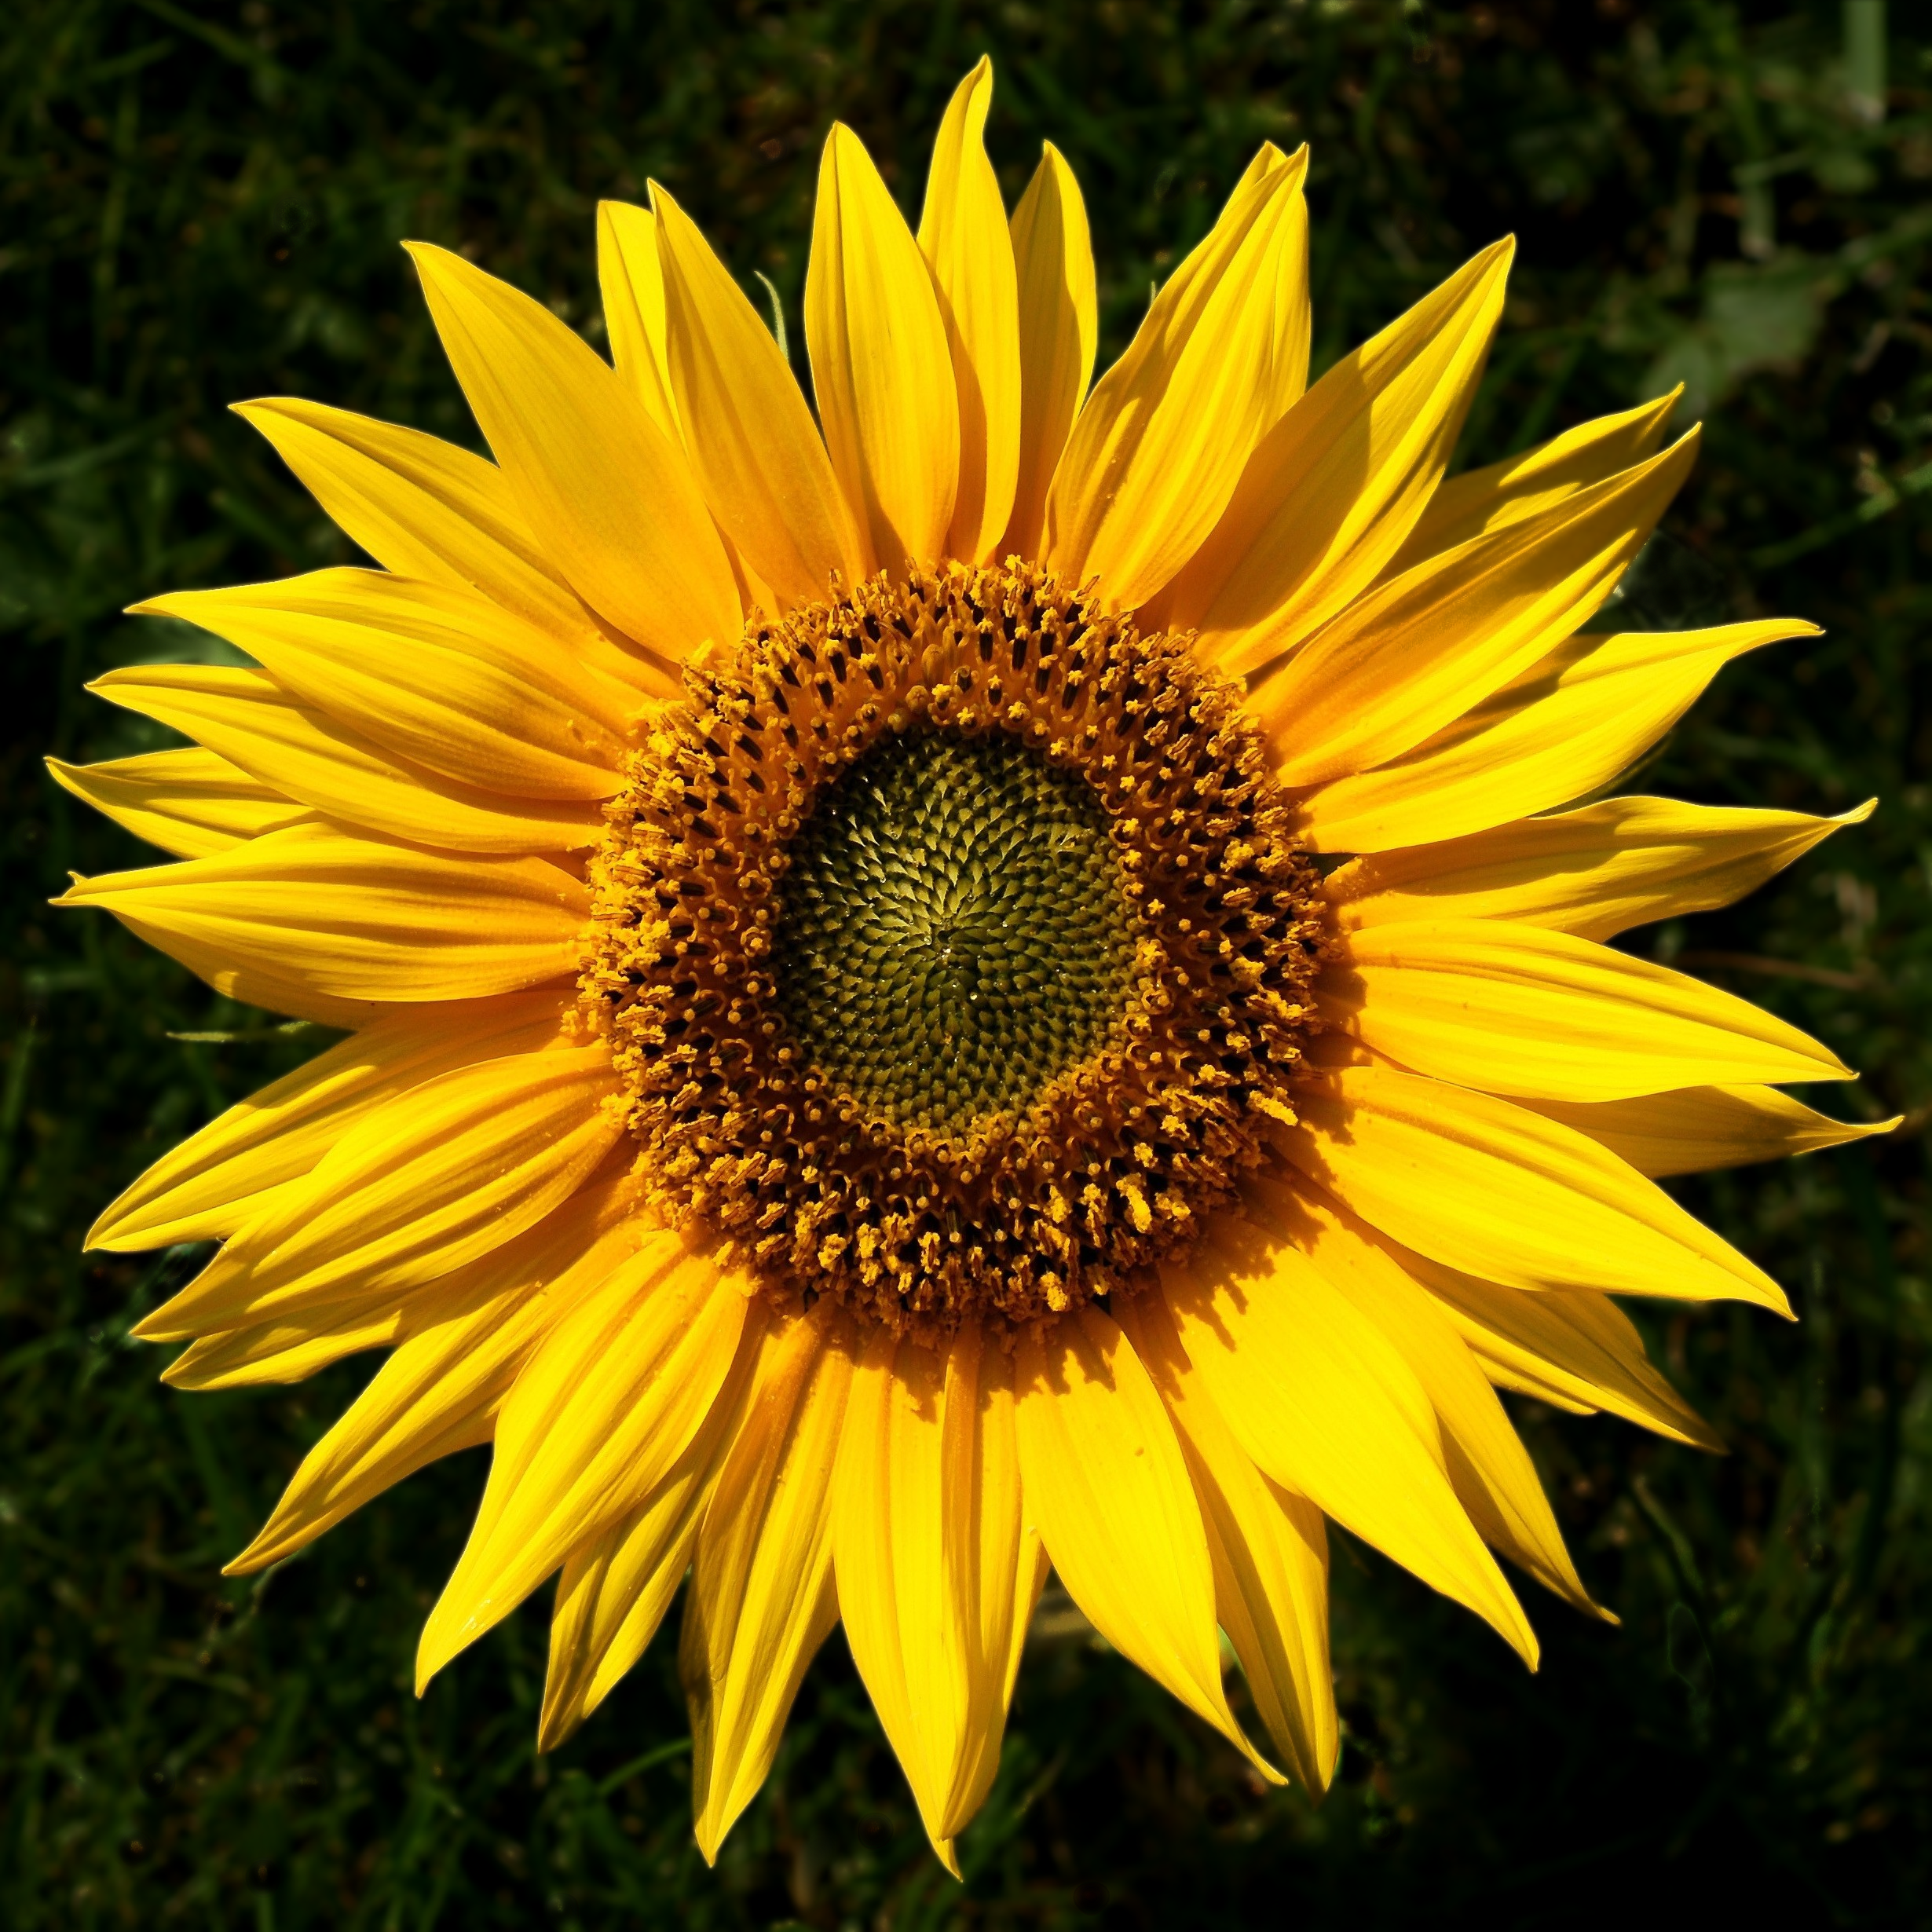 Flowers have more meaning than just their natural beauty 1 sunflower izmirmasajfo